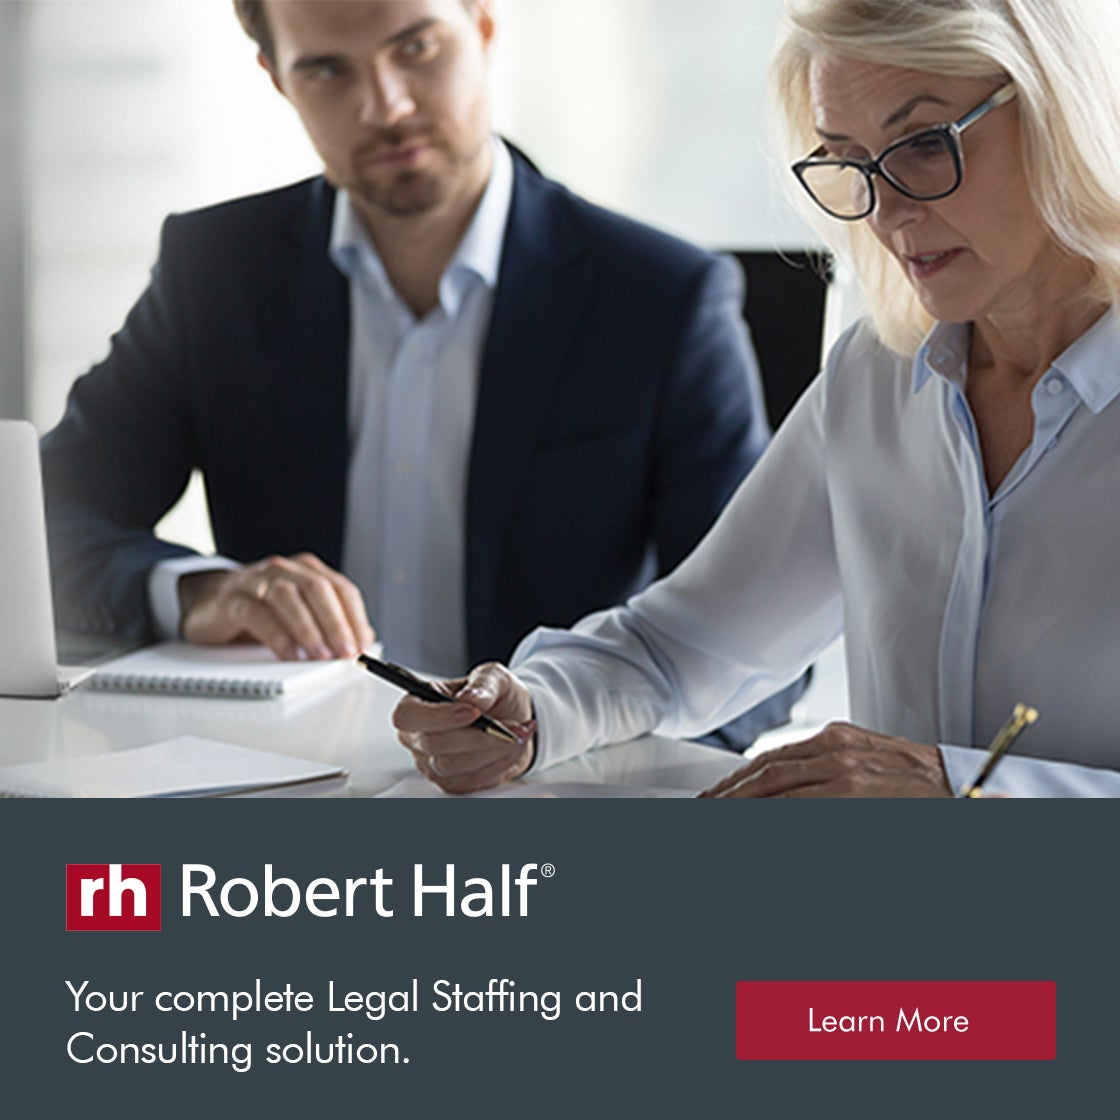 https://www.roberthalf.com/employers/legal